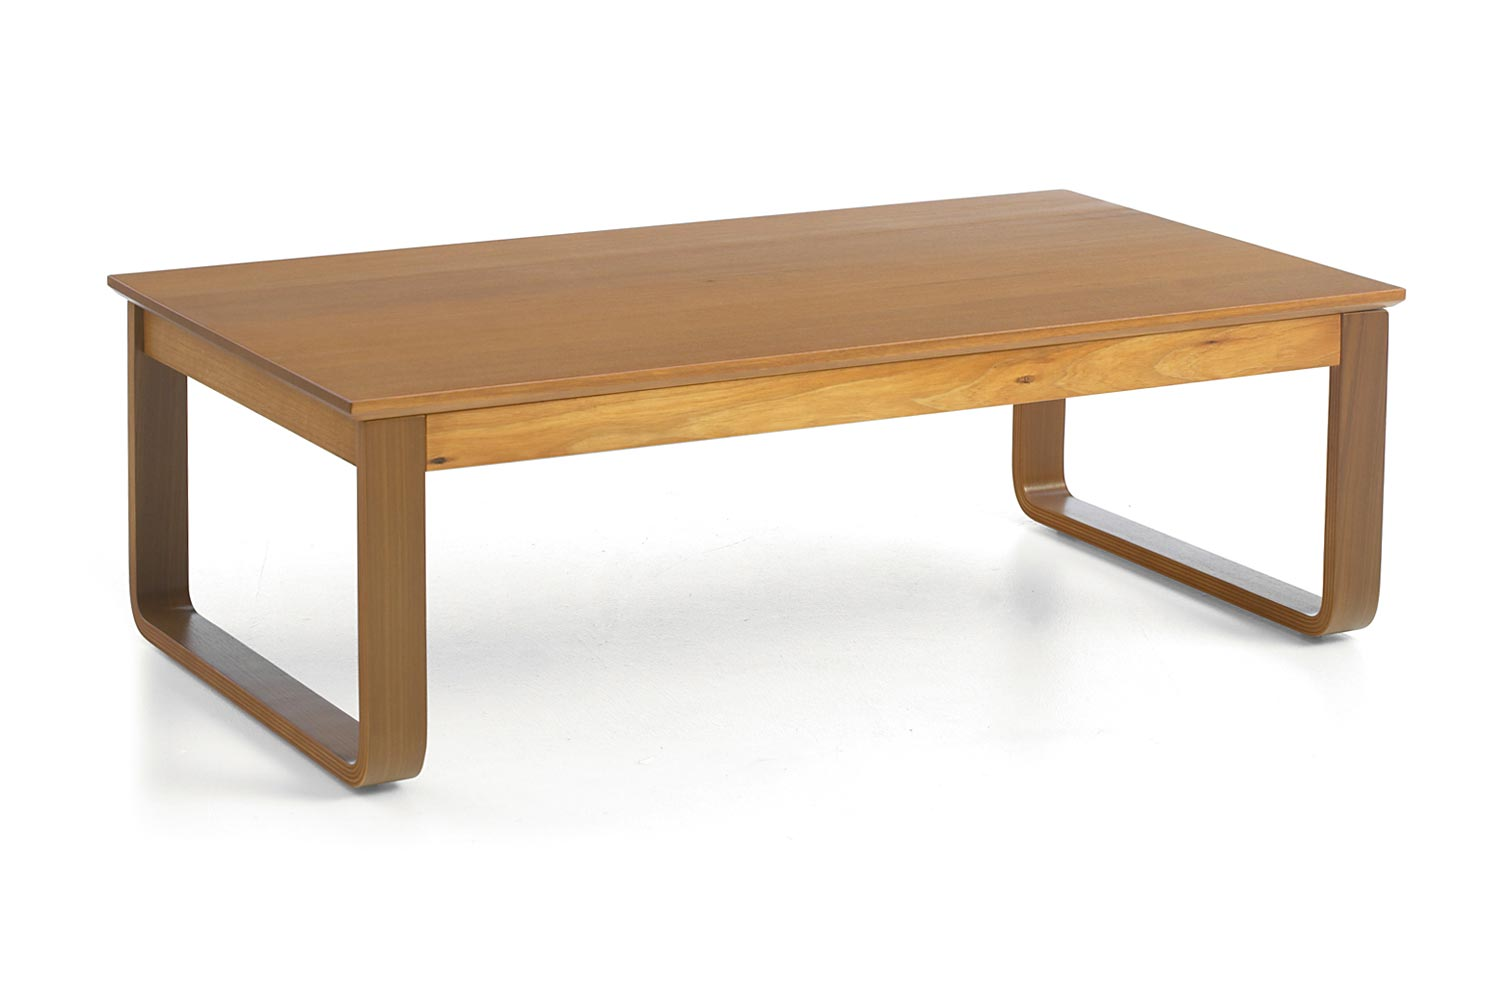 Ct4 L Timber Top Coffee Table Tessa Furniture